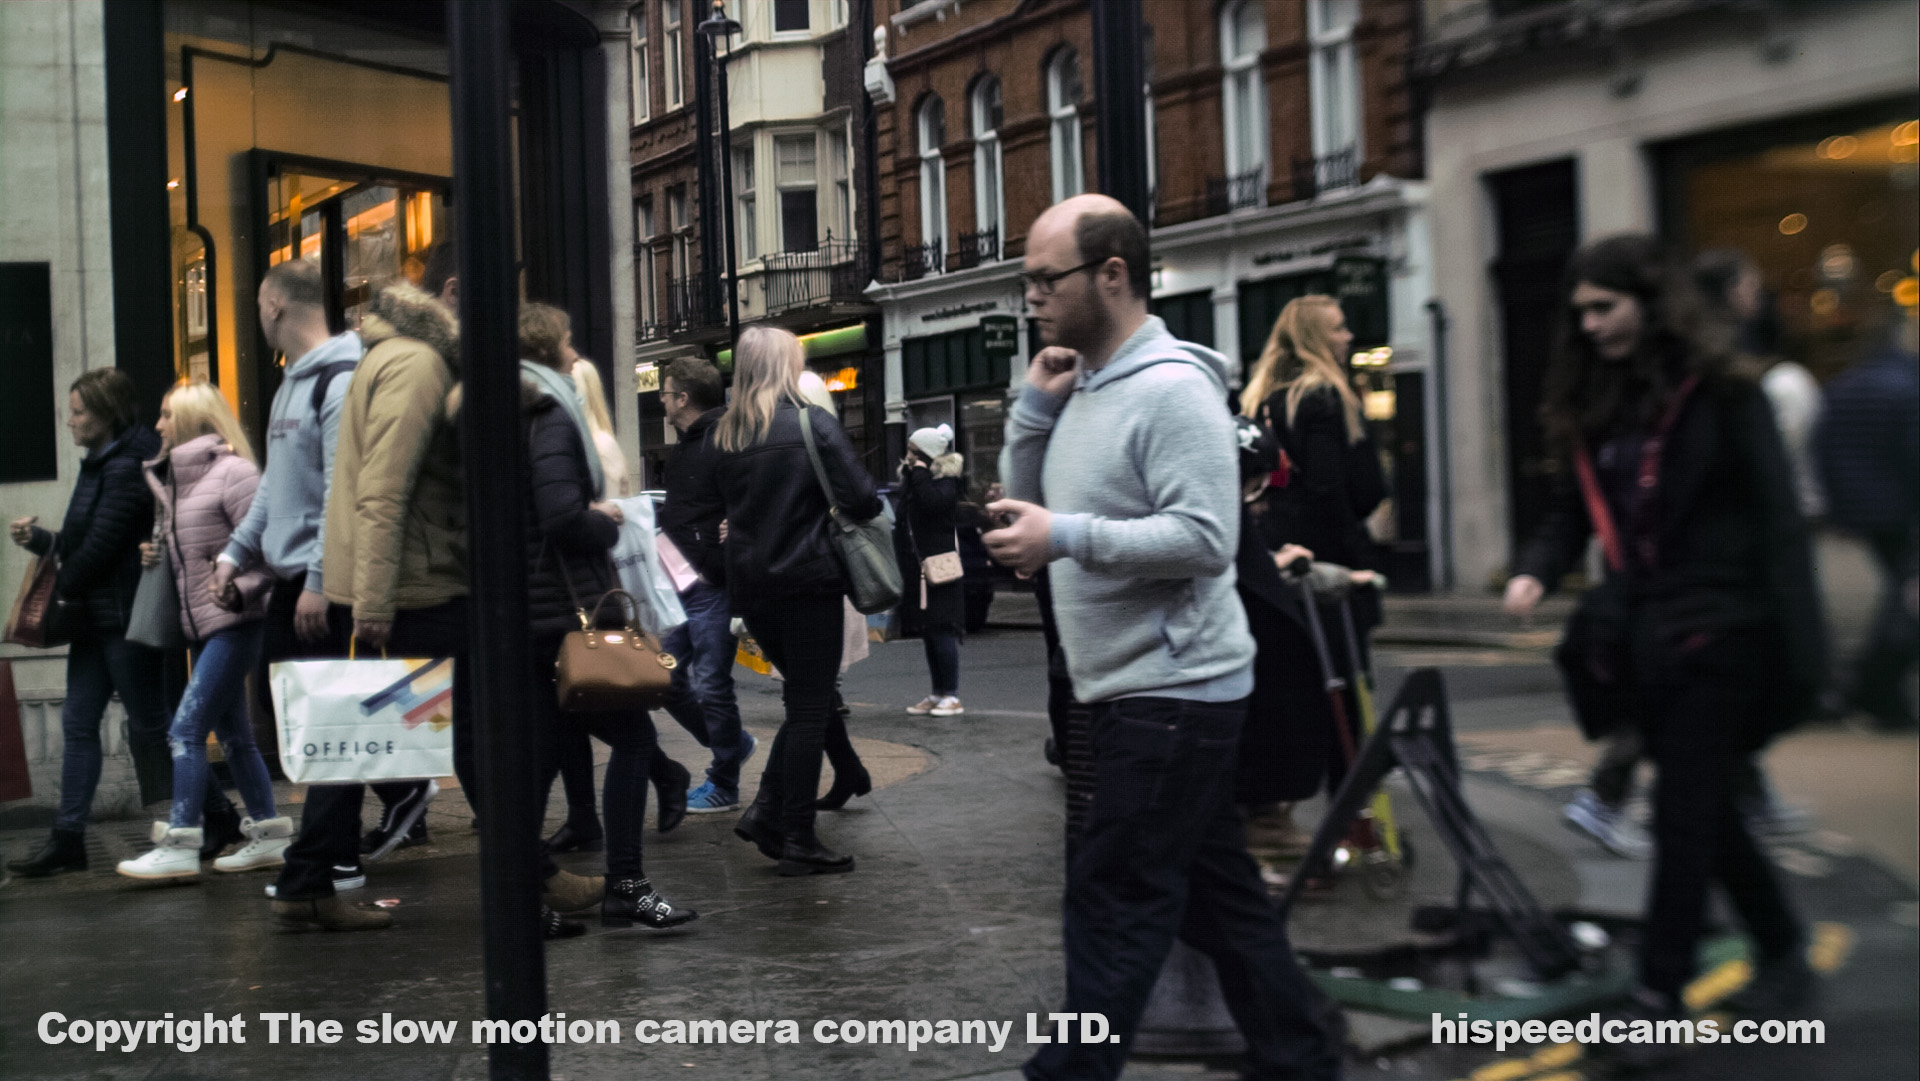 Street People Frame from the fps4000. DNG RAW Graded by James Benet.